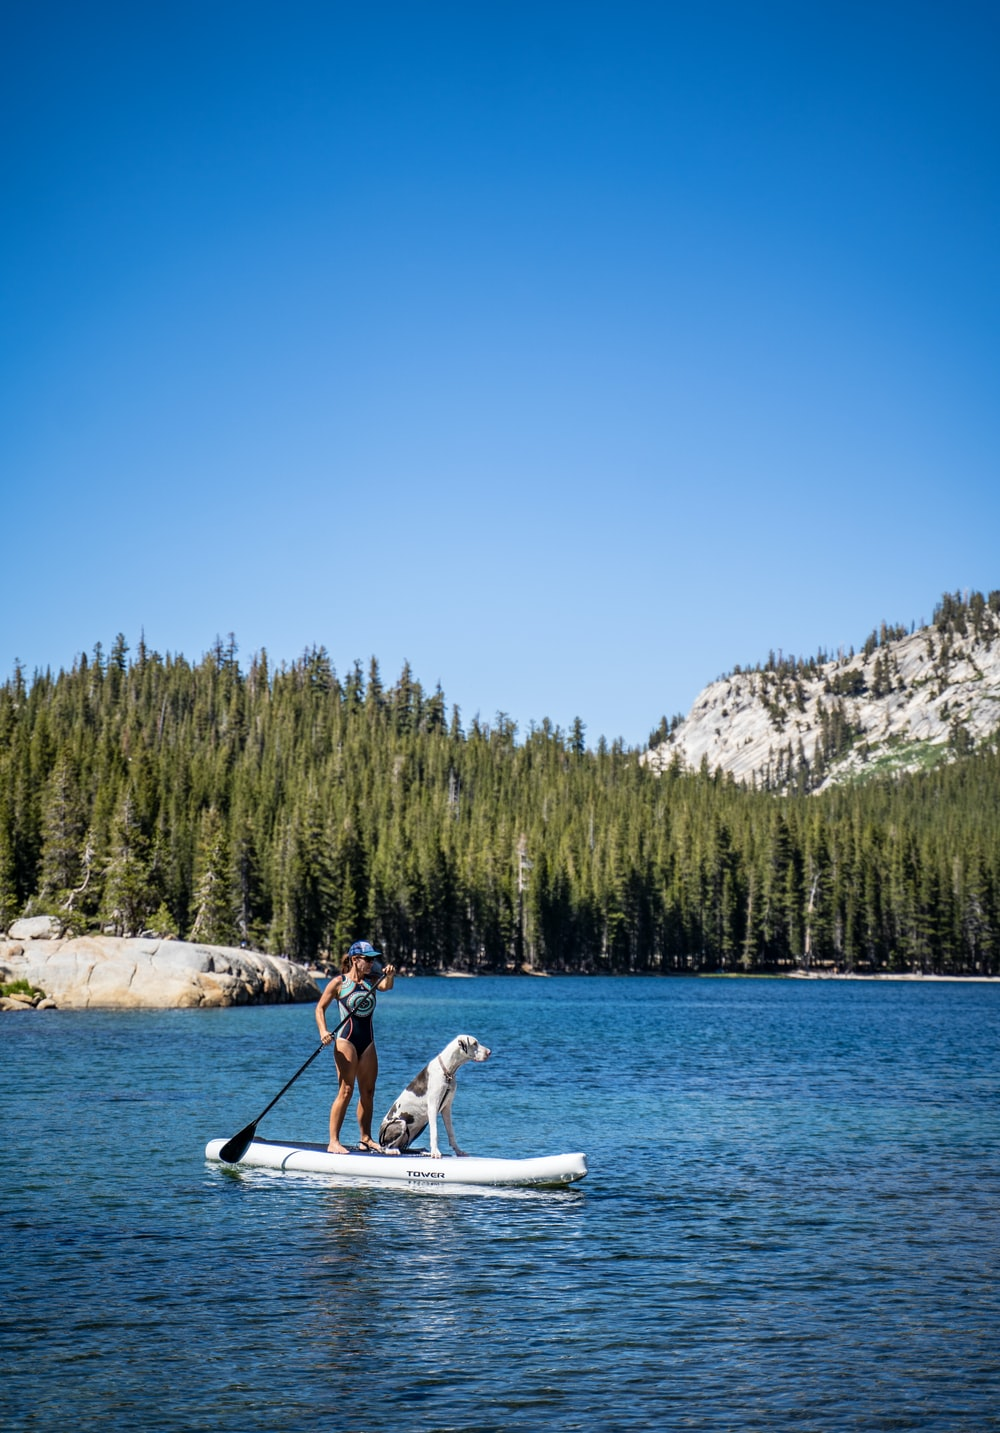 man and woman riding on white boat on lake during daytime